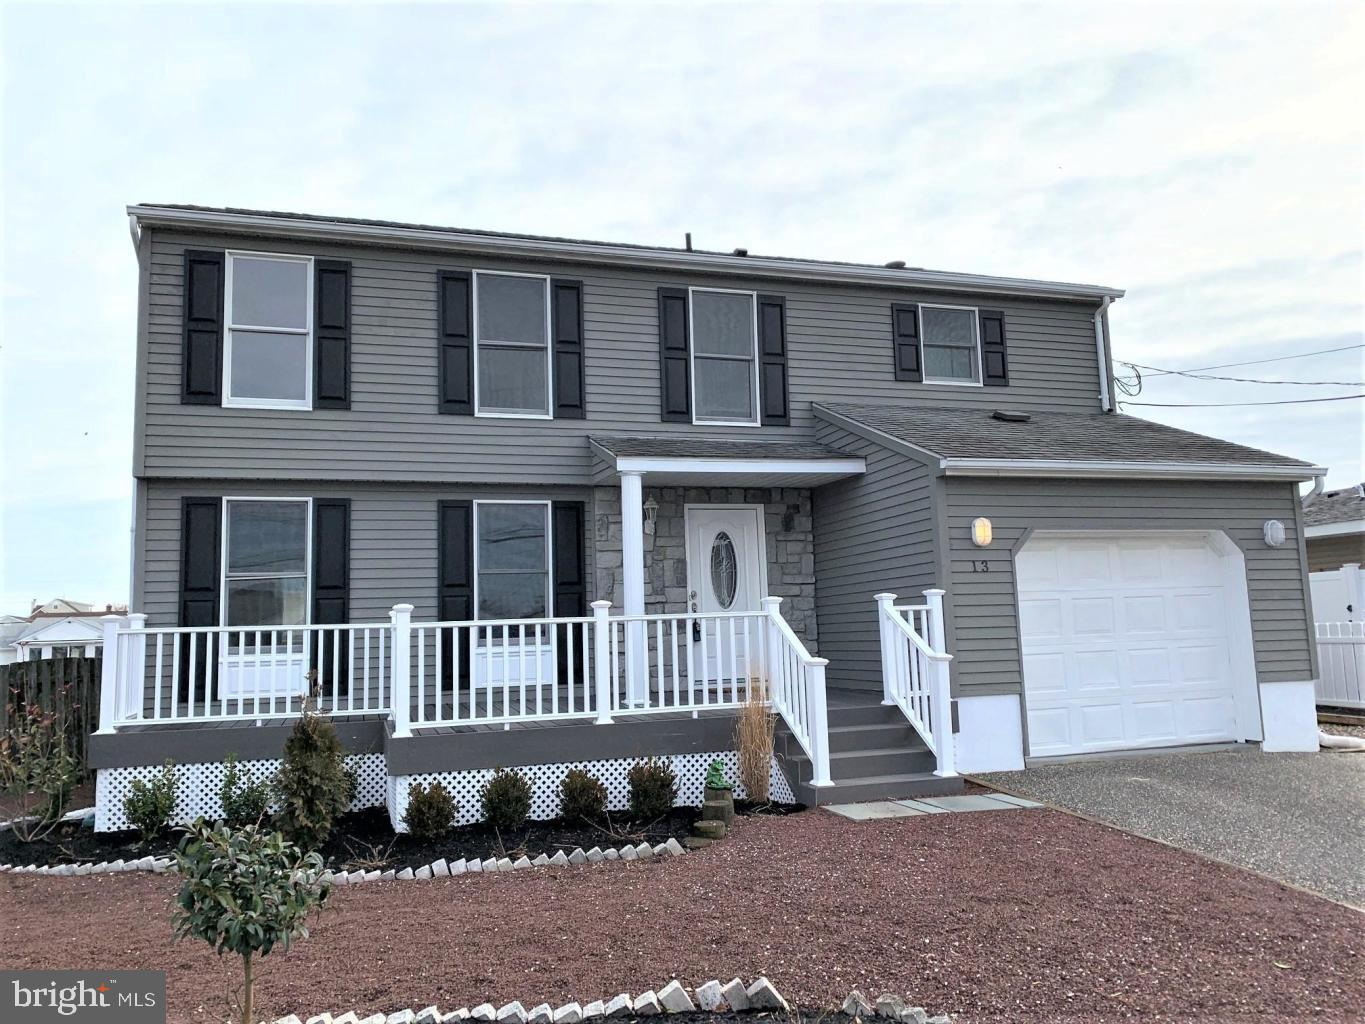 13 NEPTUNE ROAD, TOMS RIVER, NJ 08753